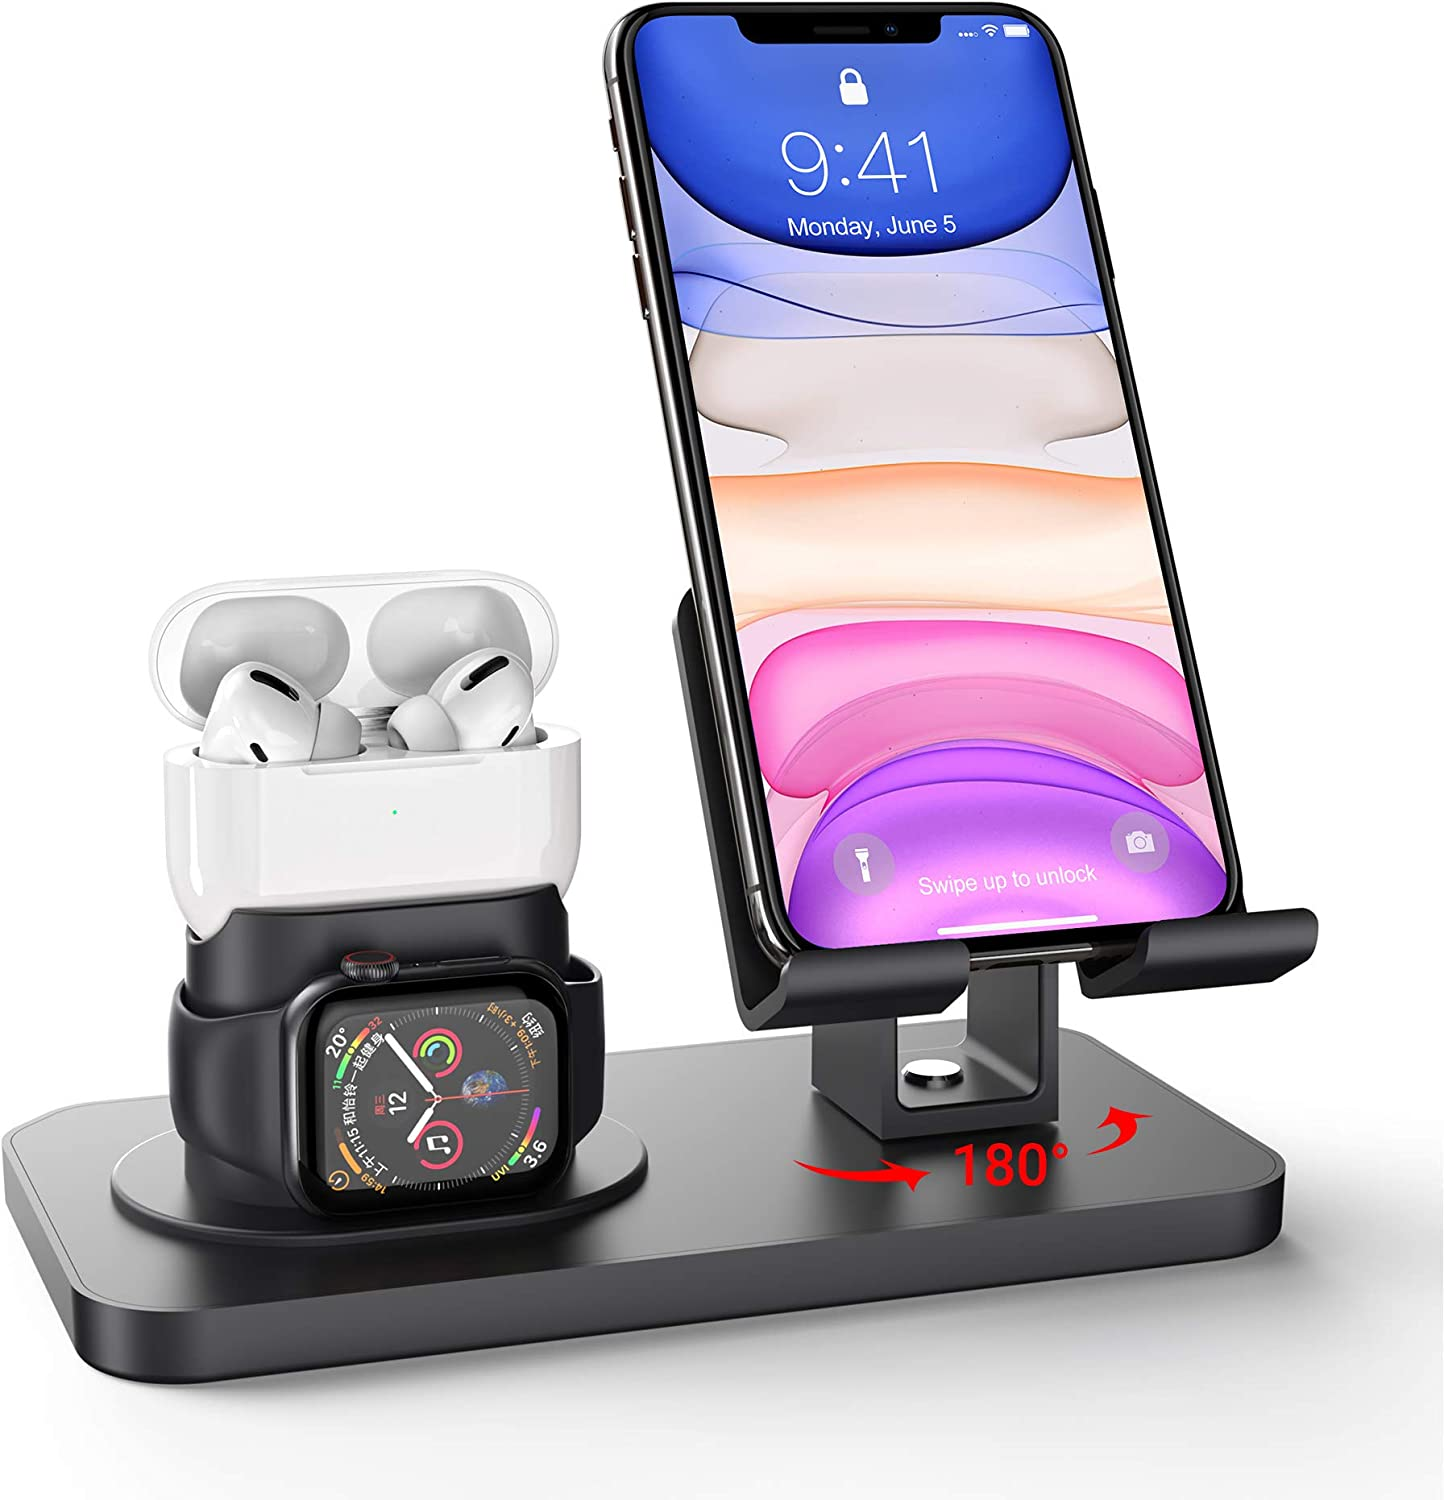 Imguardz 3 in 1 Charging Station Compatible with Apple Watch iPhone and Airpods, Charging Stand Dock for iWatch Series 5/4/3/2/1, AirPods Pro 2/1 and iPhone 11/pro/max//Xr/8/7 Plus/SE, Black